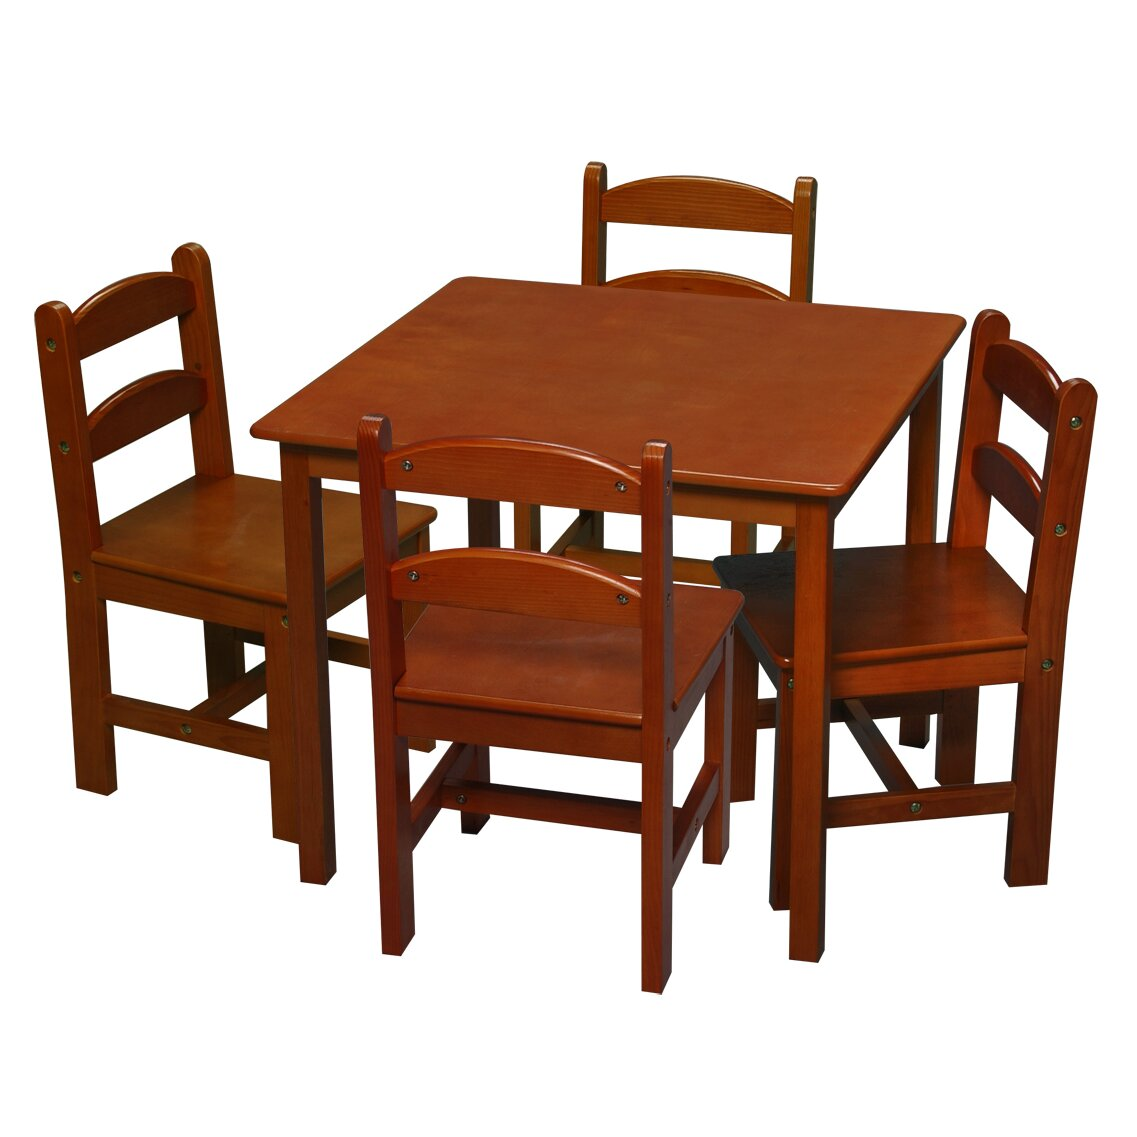 Gift mark kids 5 piece table chair set reviews wayfair for Table and chair set